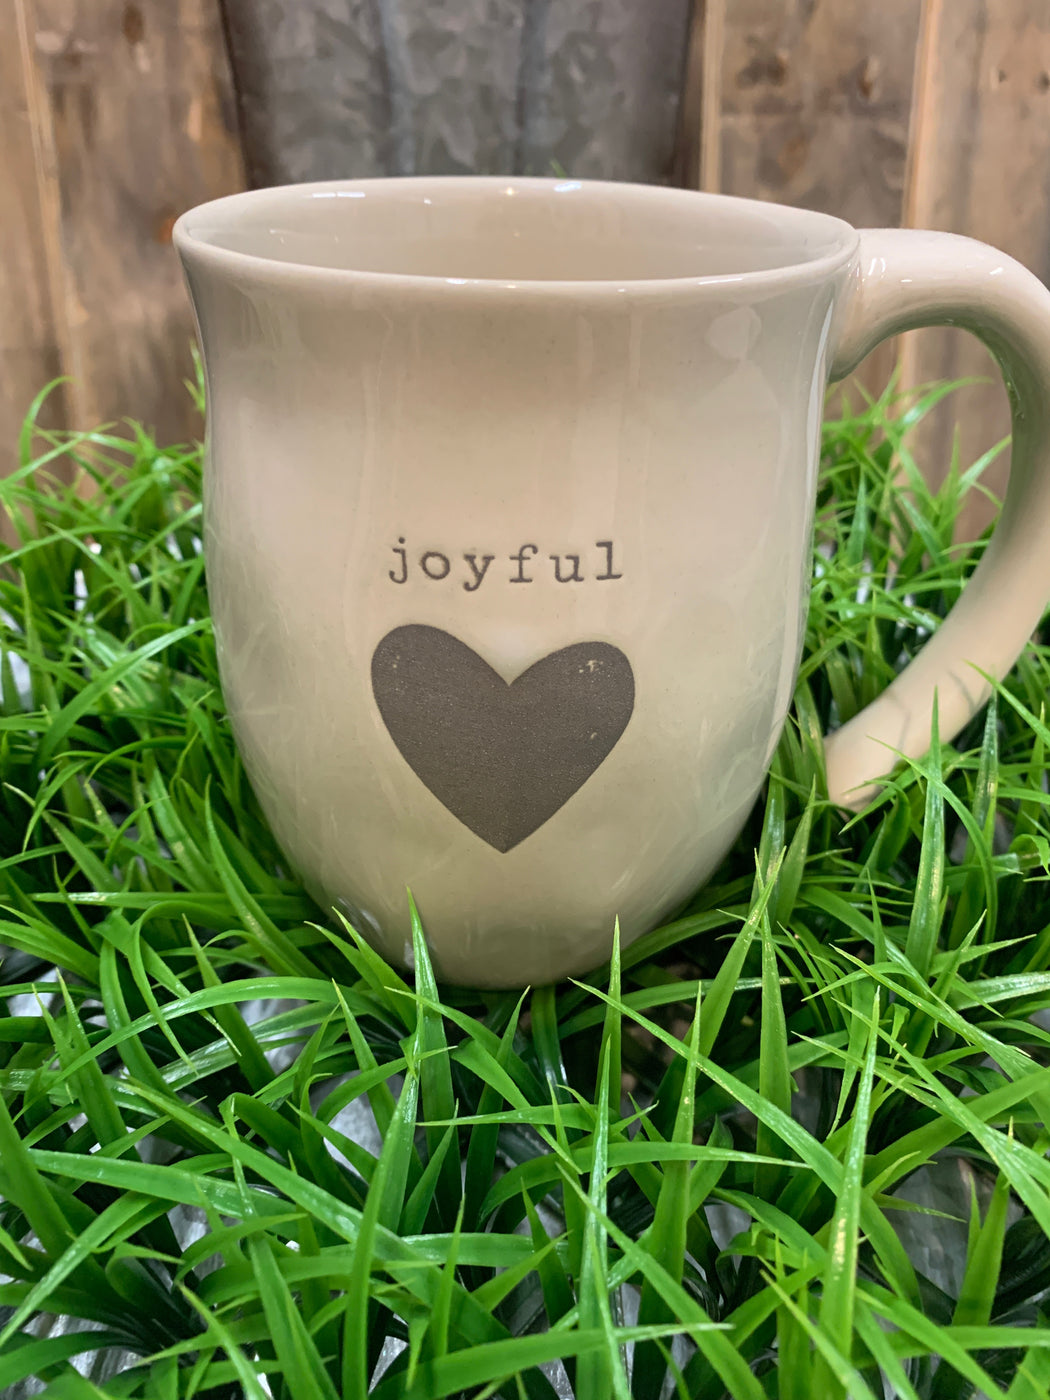 Holding a hot beverage in both hands is a ritual of calm. It gives one time to relax, reflect and think of the uplifting and memorable experiences in life. The Joyful Heart Mug provides its owner with cozy reflection time and calm.